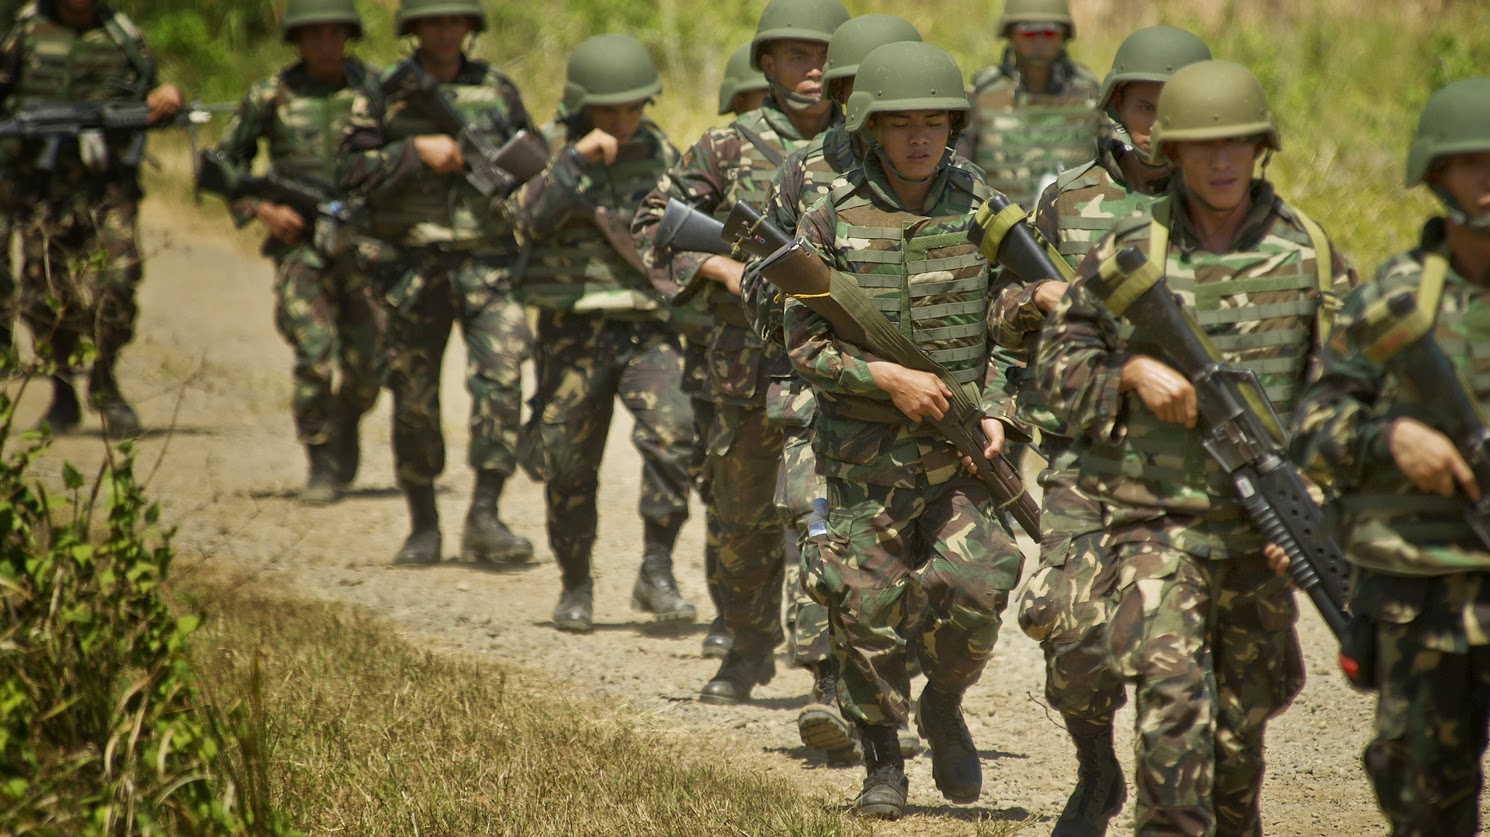 pha_soldiers_with_body_armor.jpg